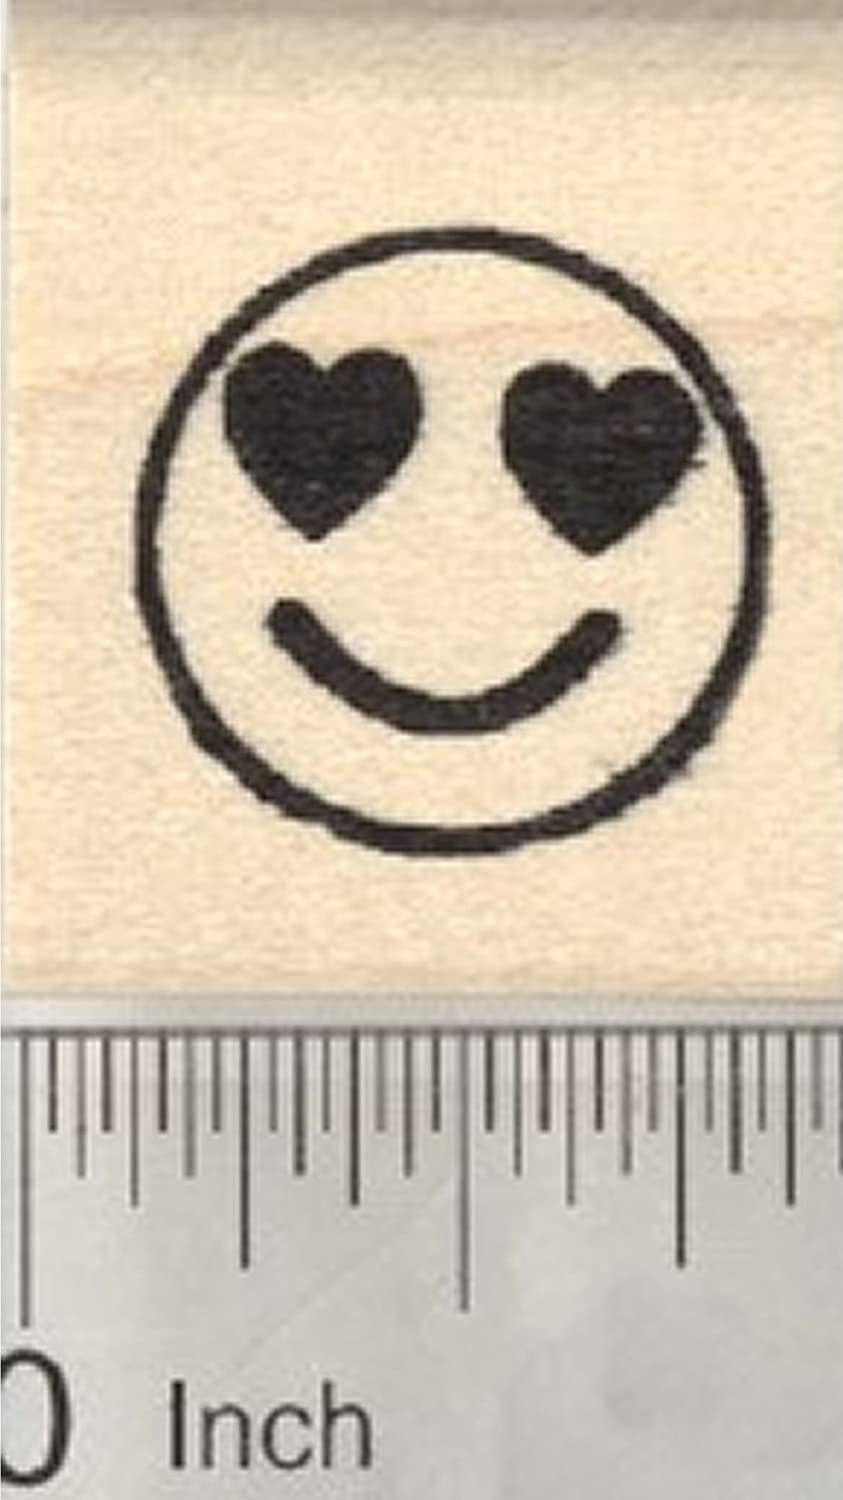 Smiling Face Rubber Stamp with Heart-Shaped Eyes .75 inch Emoji